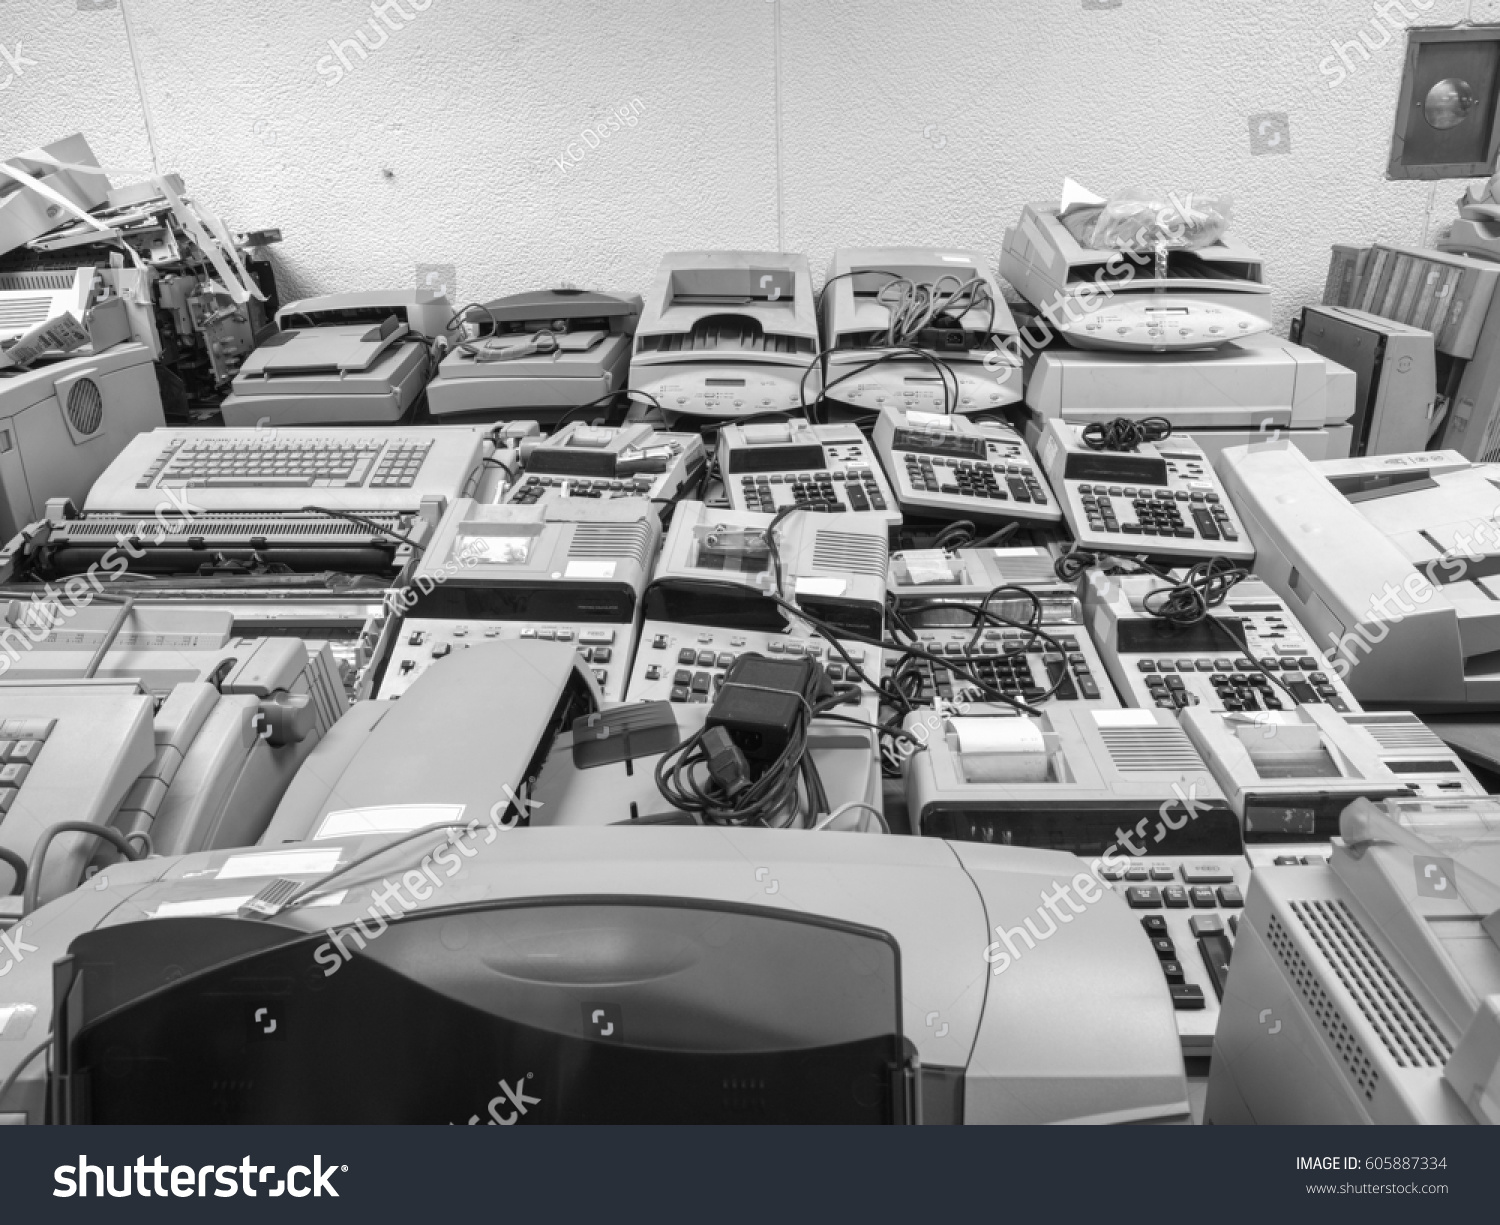 High resolution black and white wide shot of disposed old cashier machines and printers that are waiting for discount sale wide shot of garage sale of old